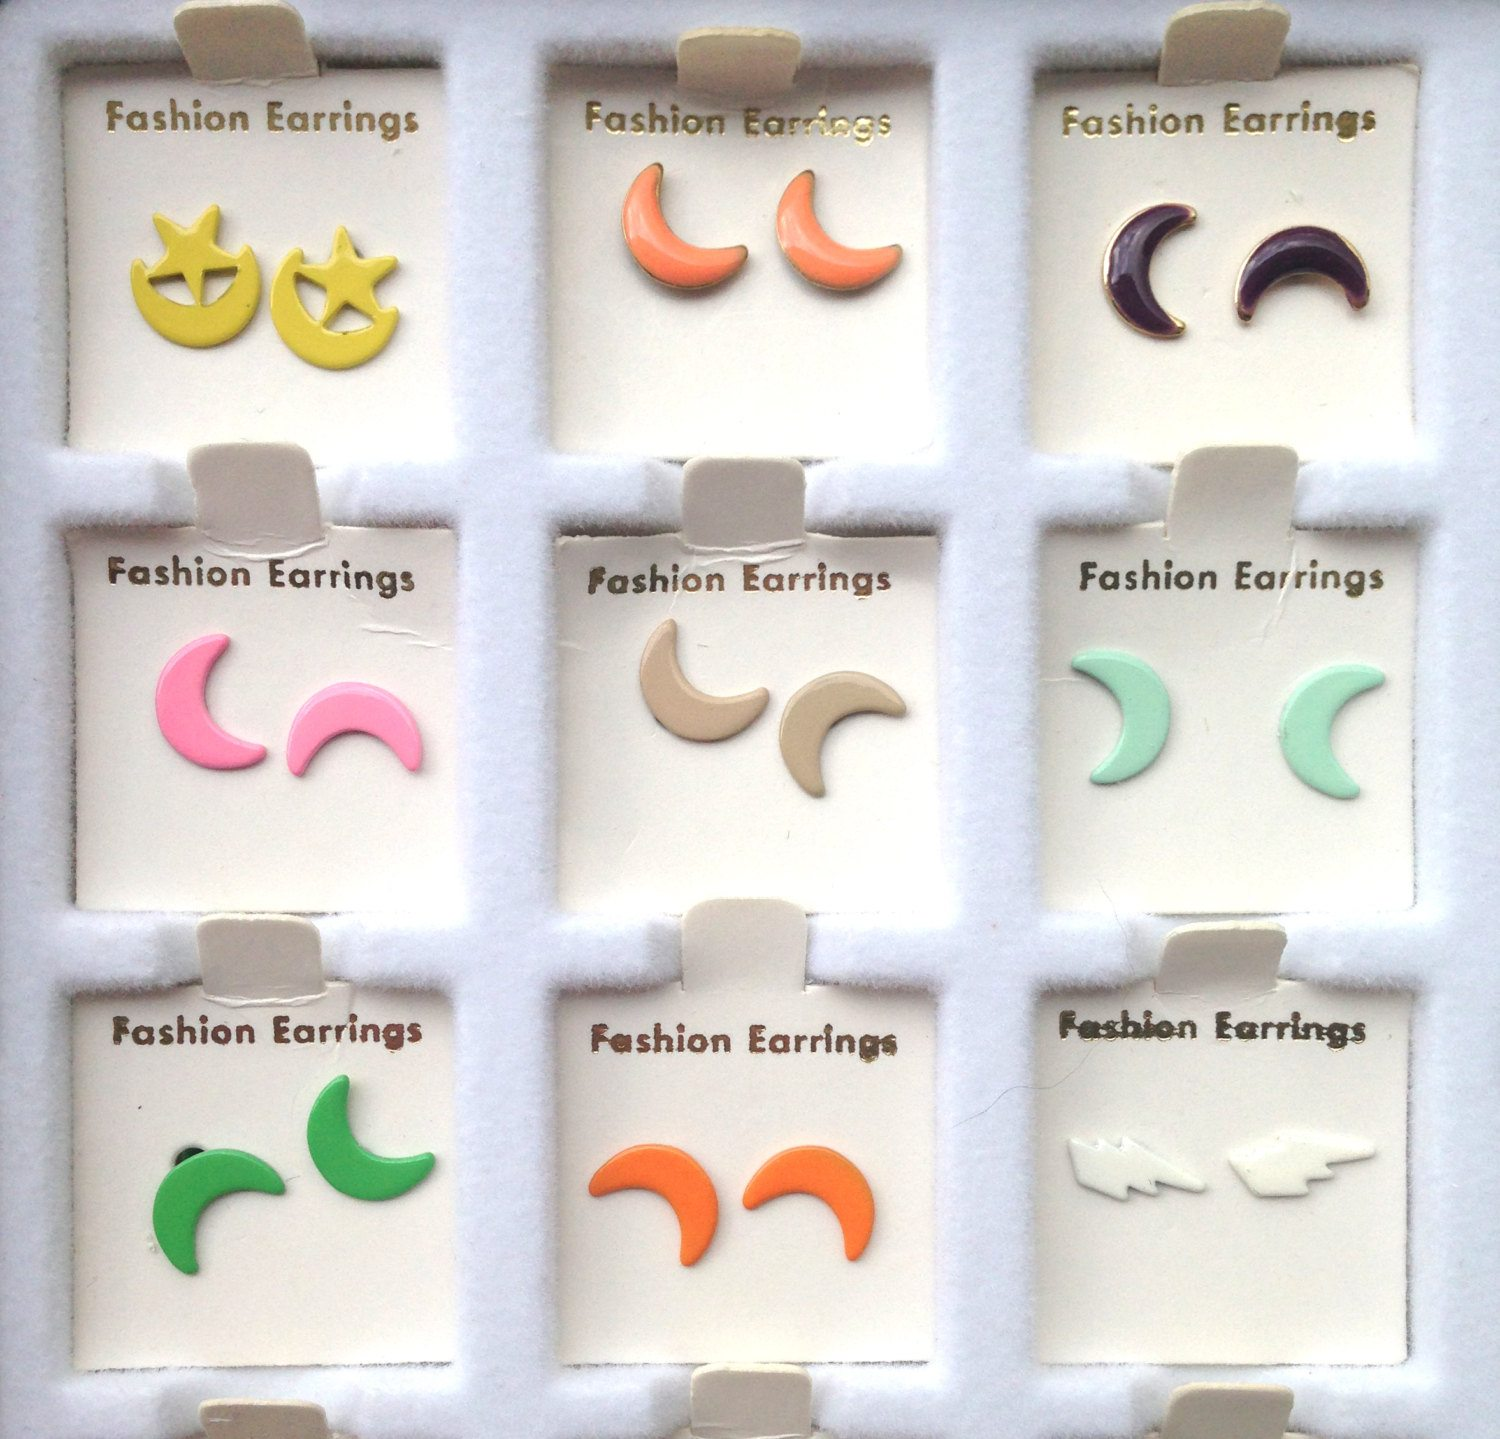 how to choose earring for someone